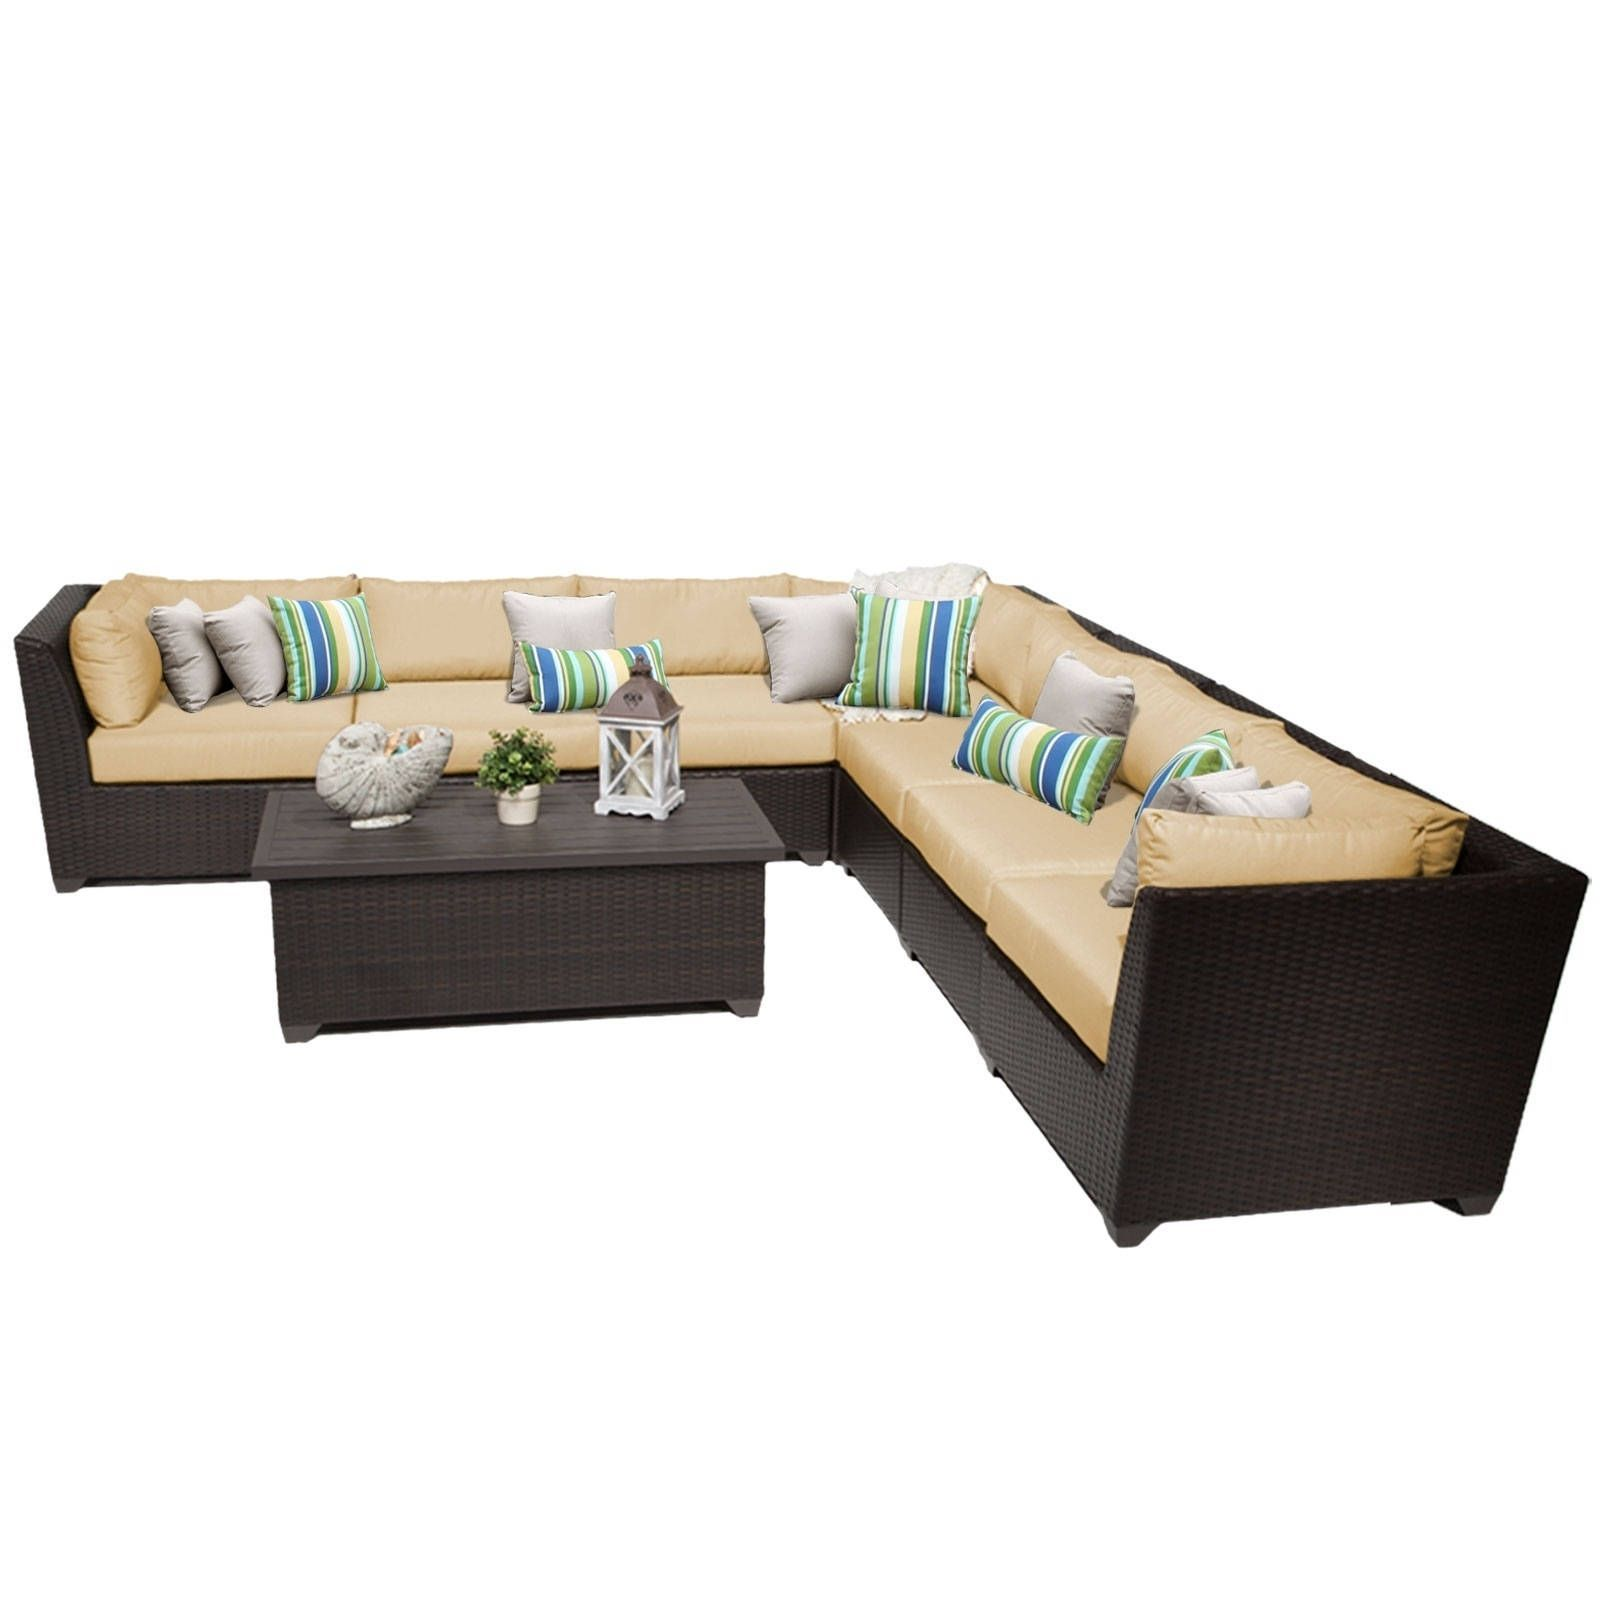 Meridian 8 Piece Outdoor Patio Wicker Sectional with Storage Table